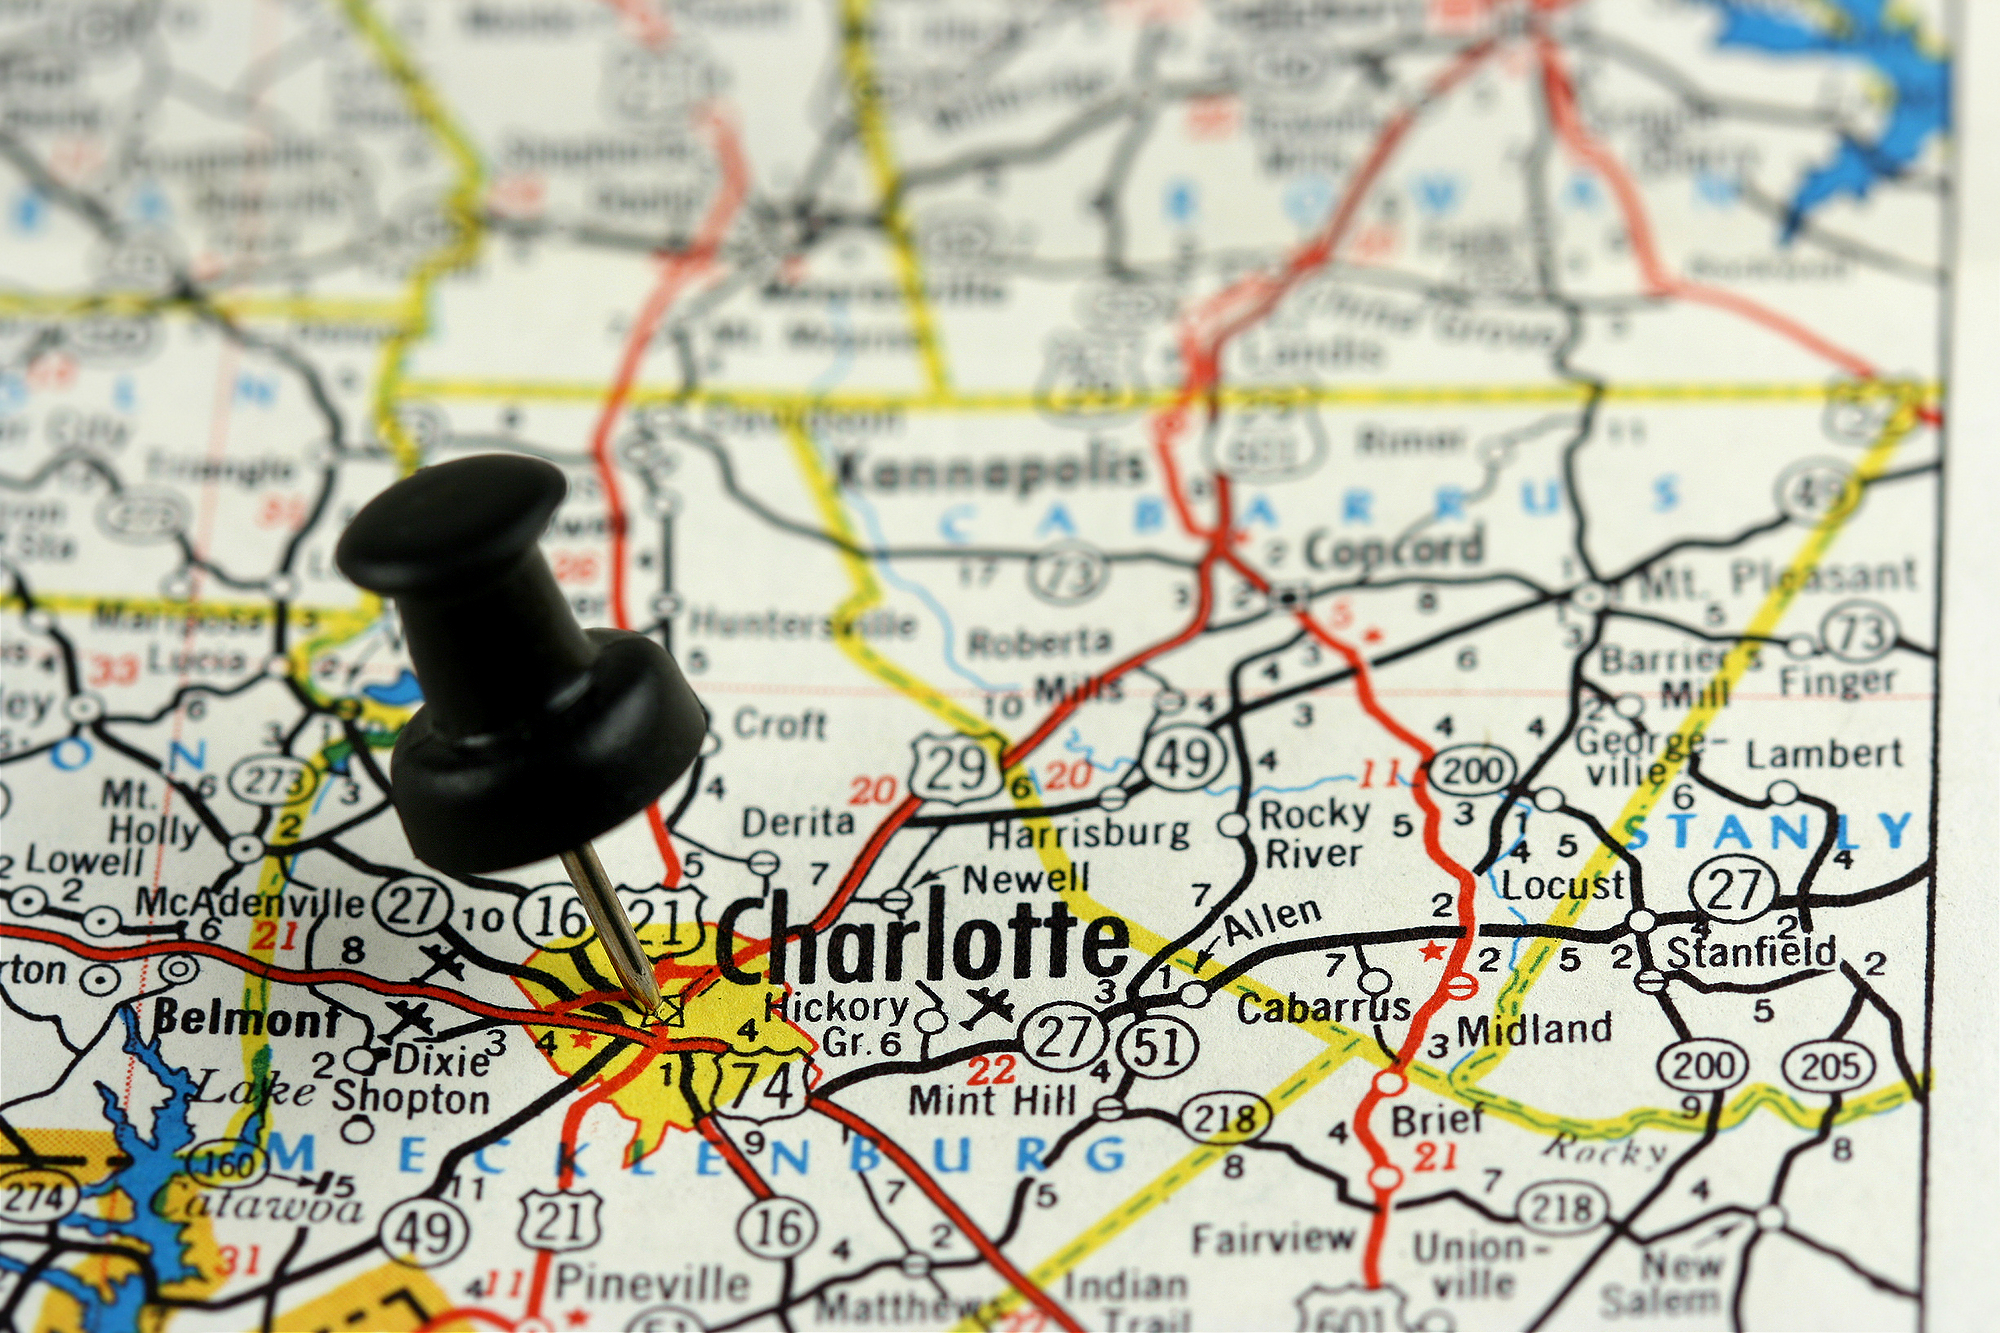 map of charlotte where pallet removal services are offered.